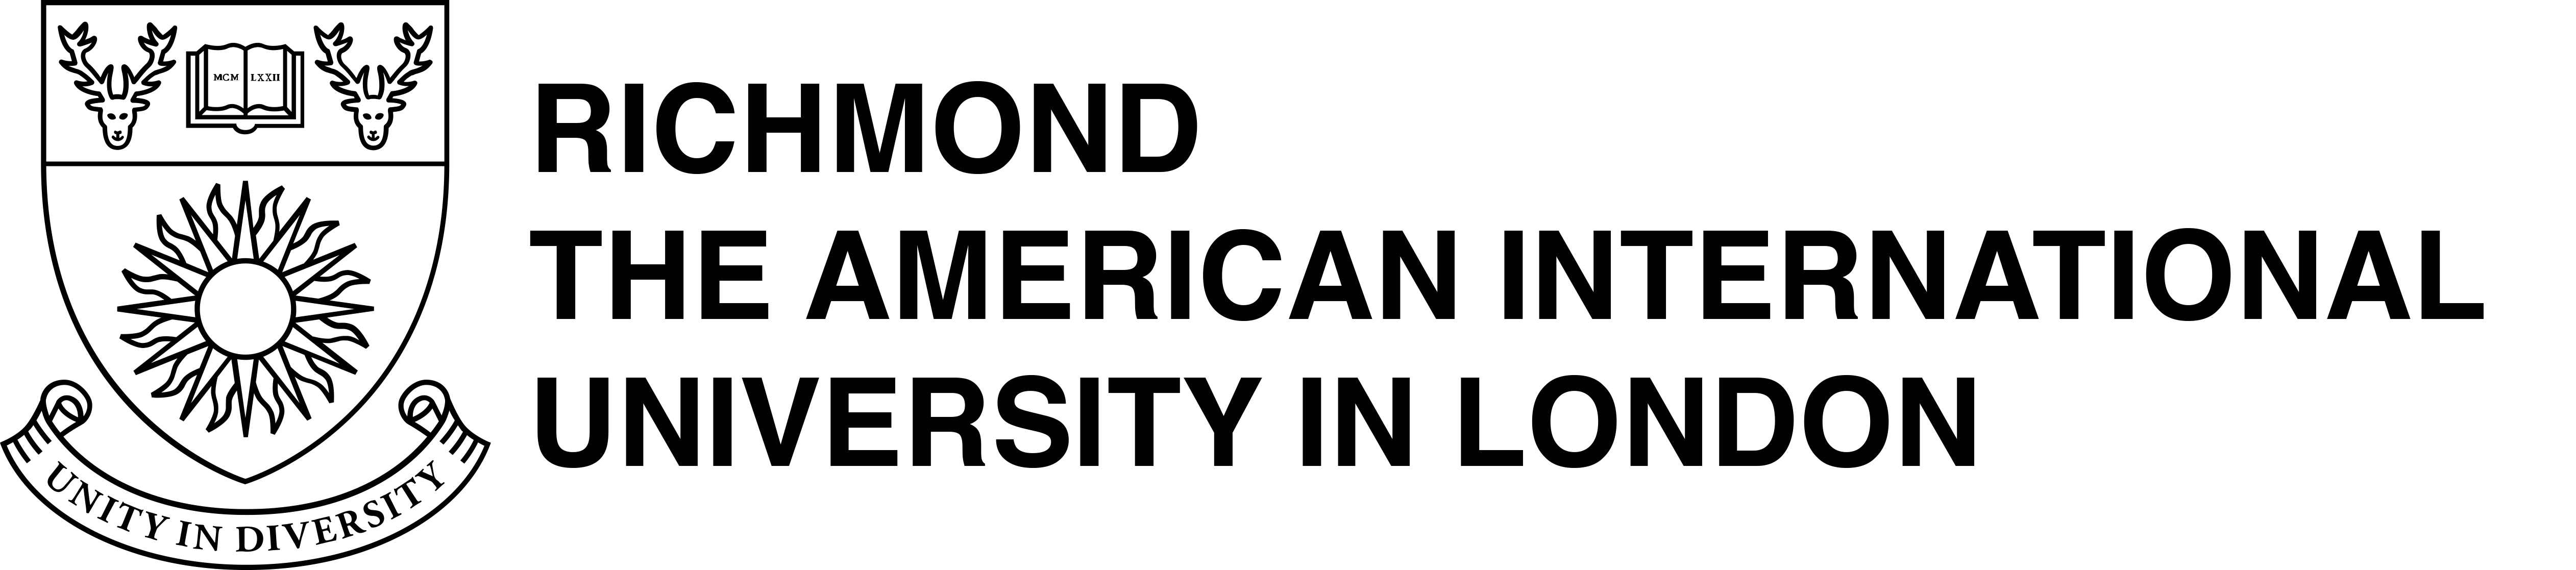 Richmond, The American University in London, INC